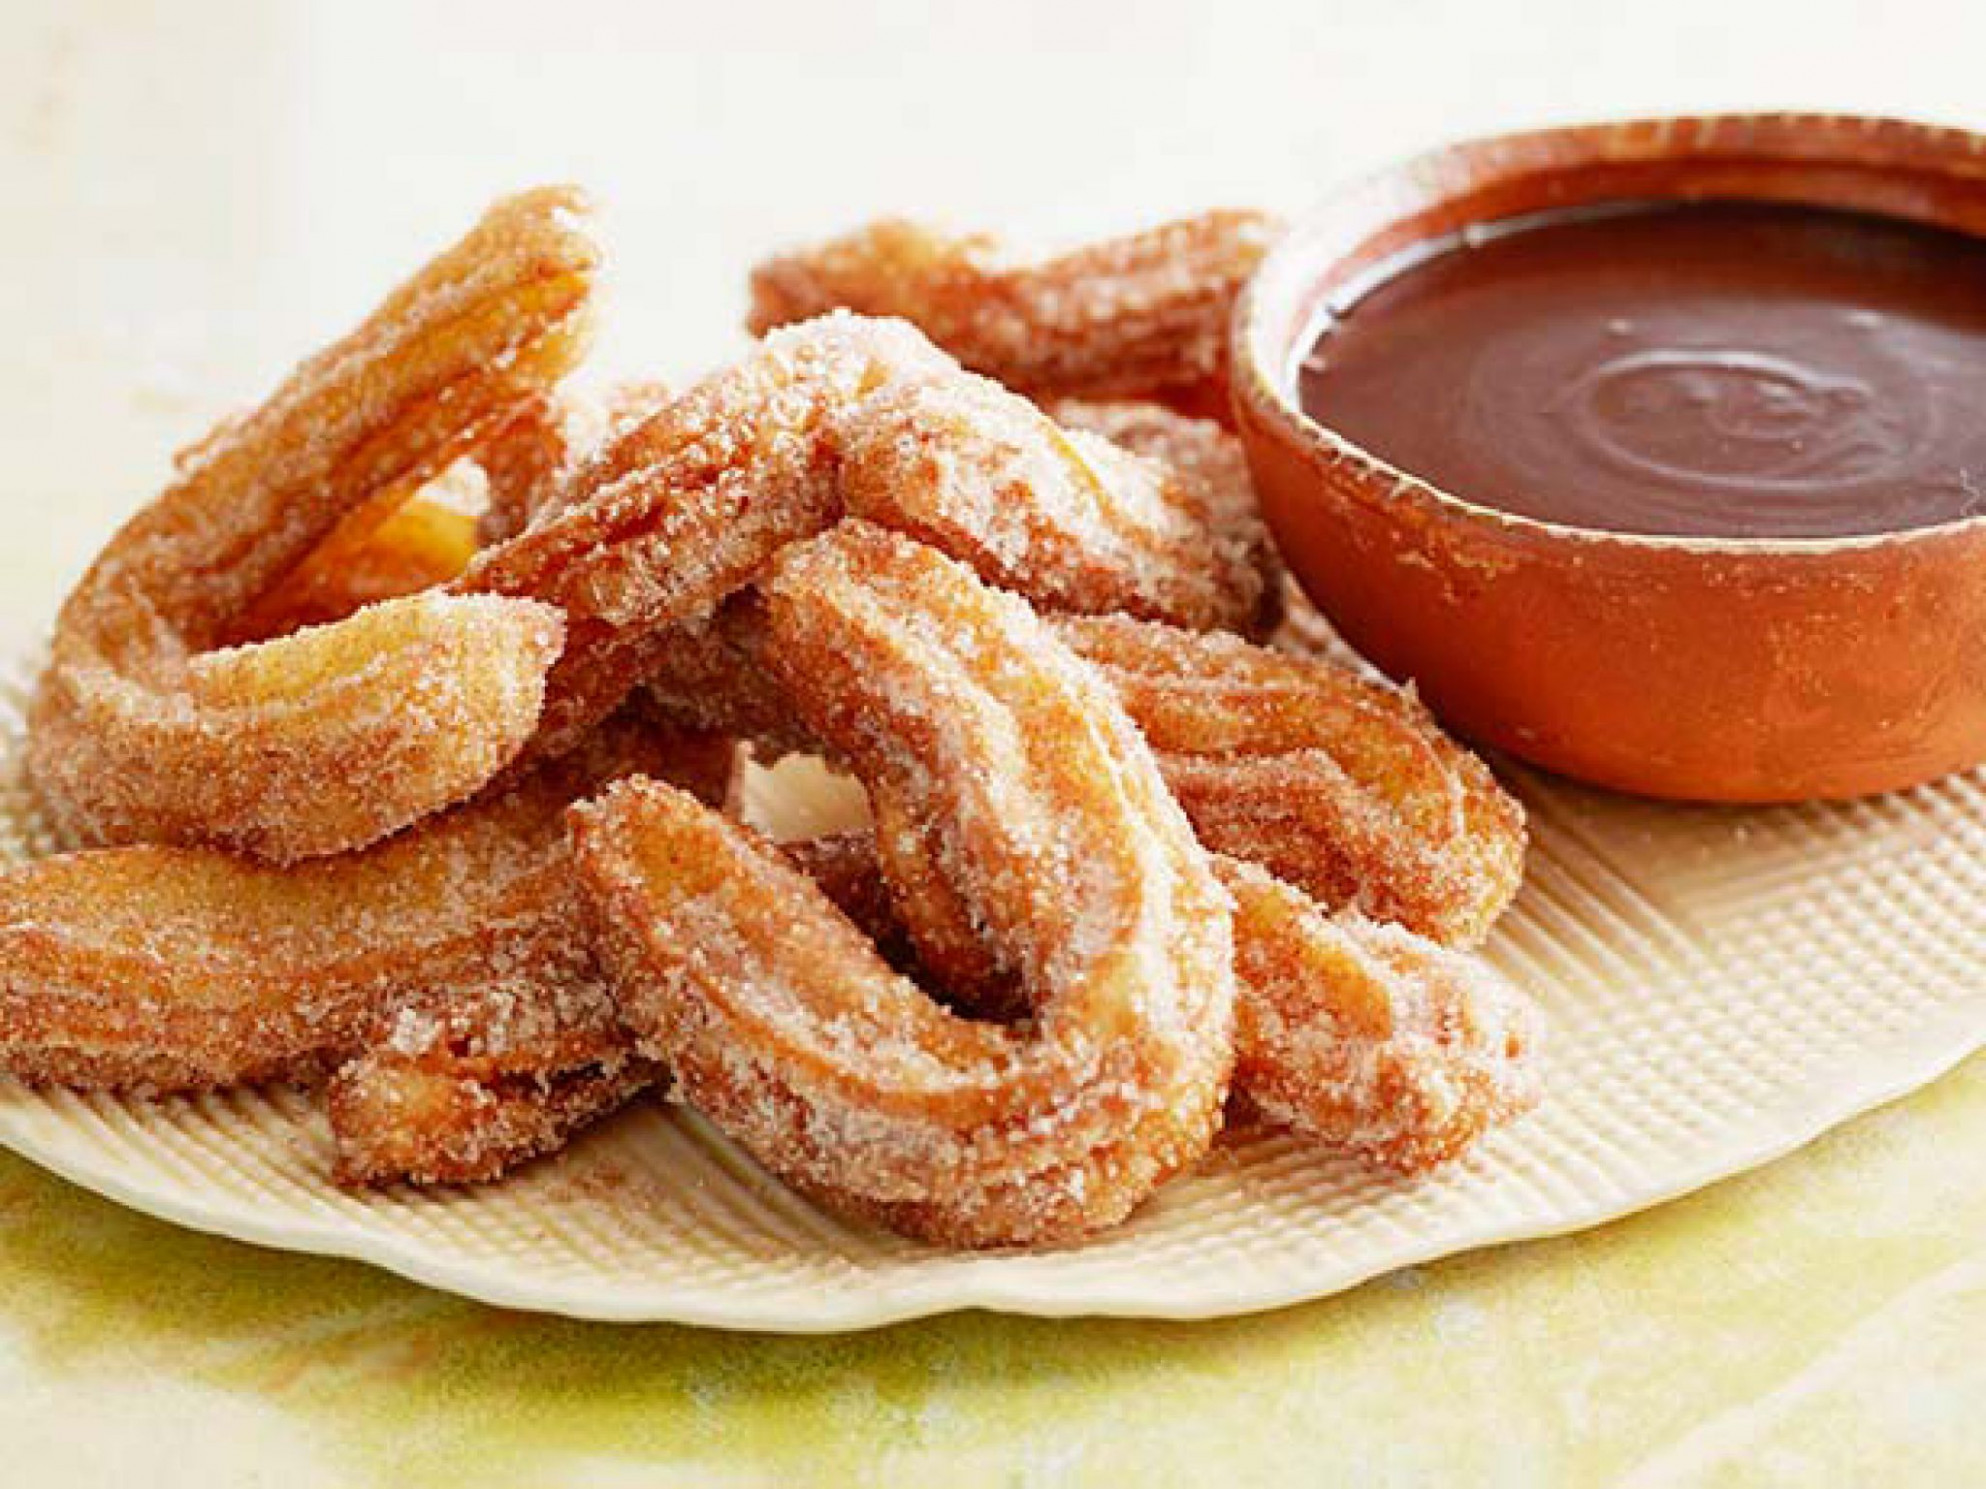 Tasty Mexican Churros recipe - Food you should try - food recipes tasty